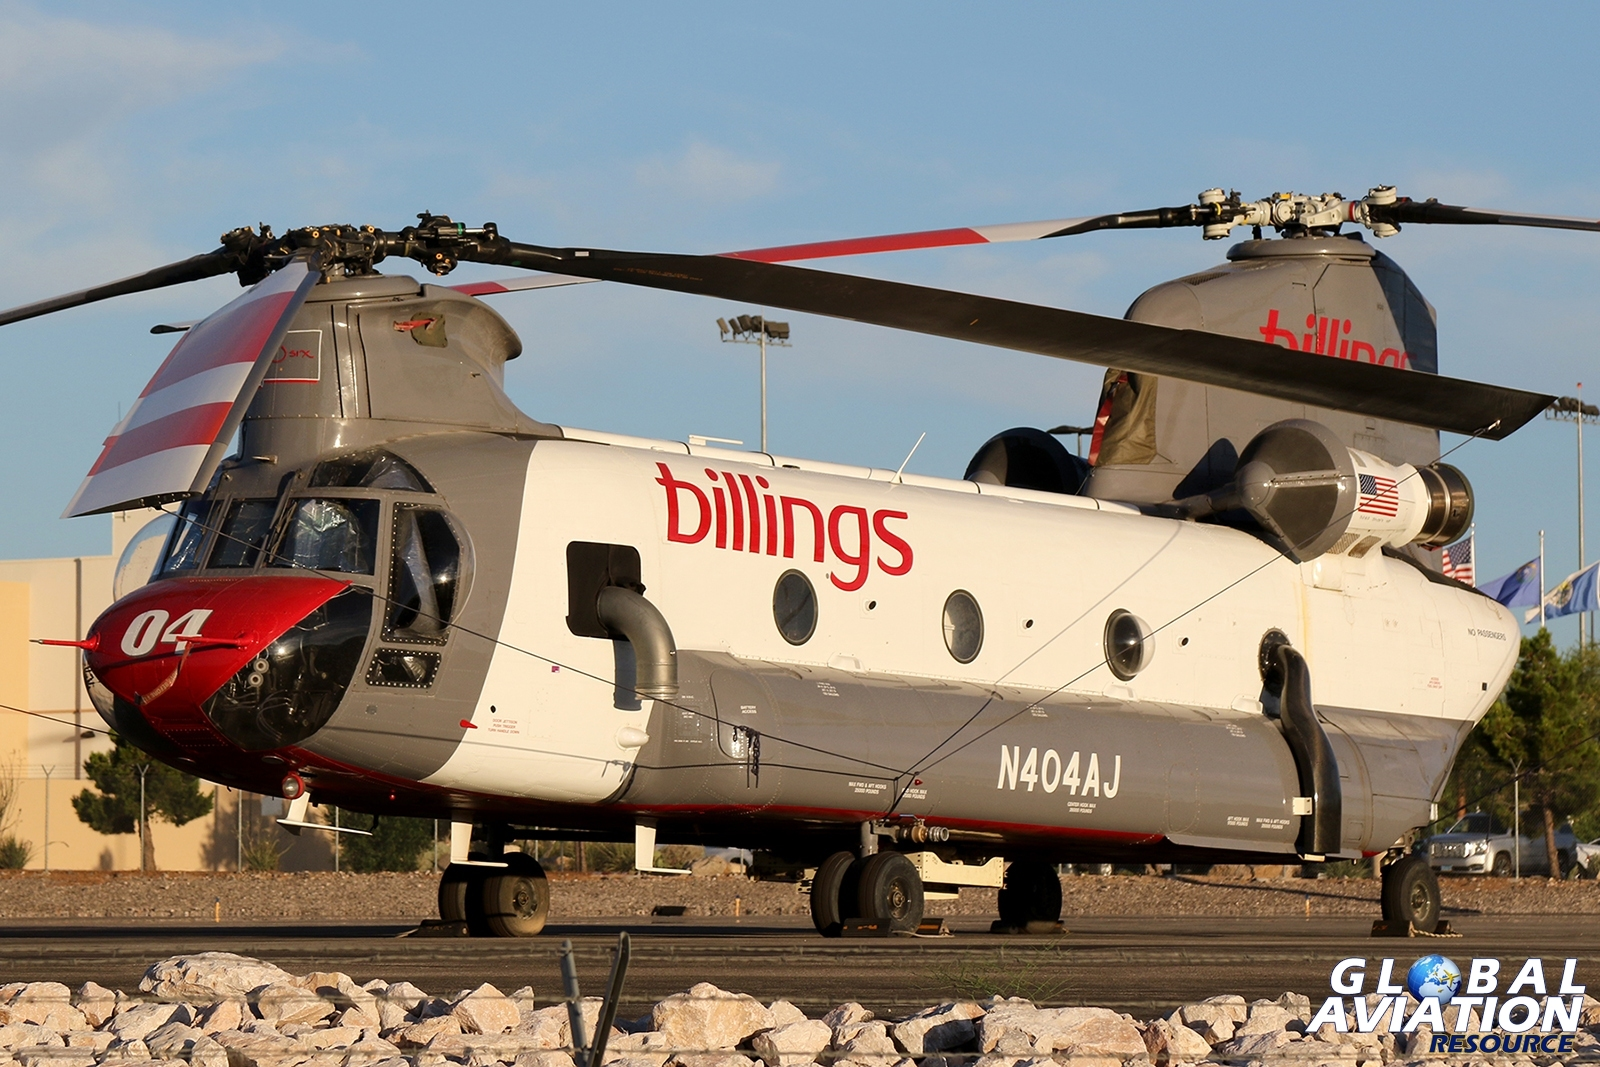 Former US Army CH-47D Chinook, now operated as a firefighter by Billings Flying Service. Seen at Henderson Executive Airport © Paul Dunn - Global Aviation Resource